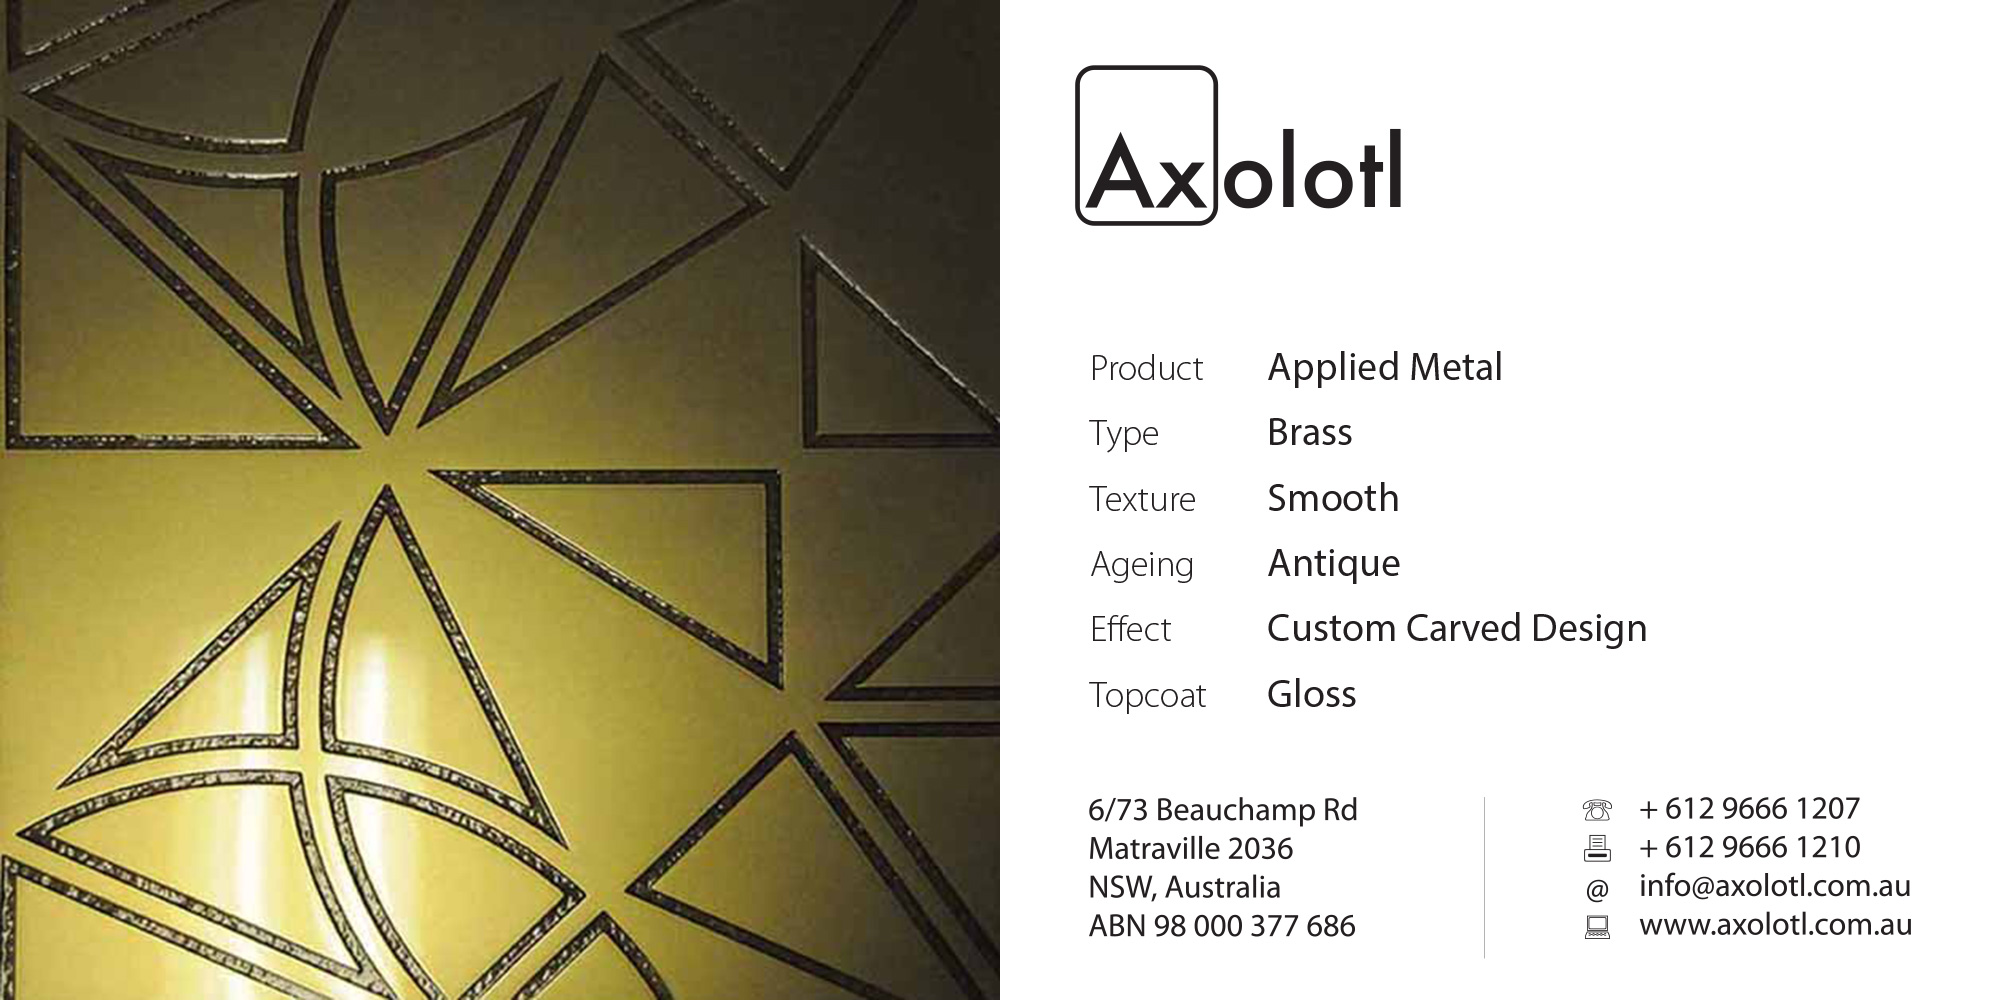 Axolotl-Brass-Gloss-Carved.jpg